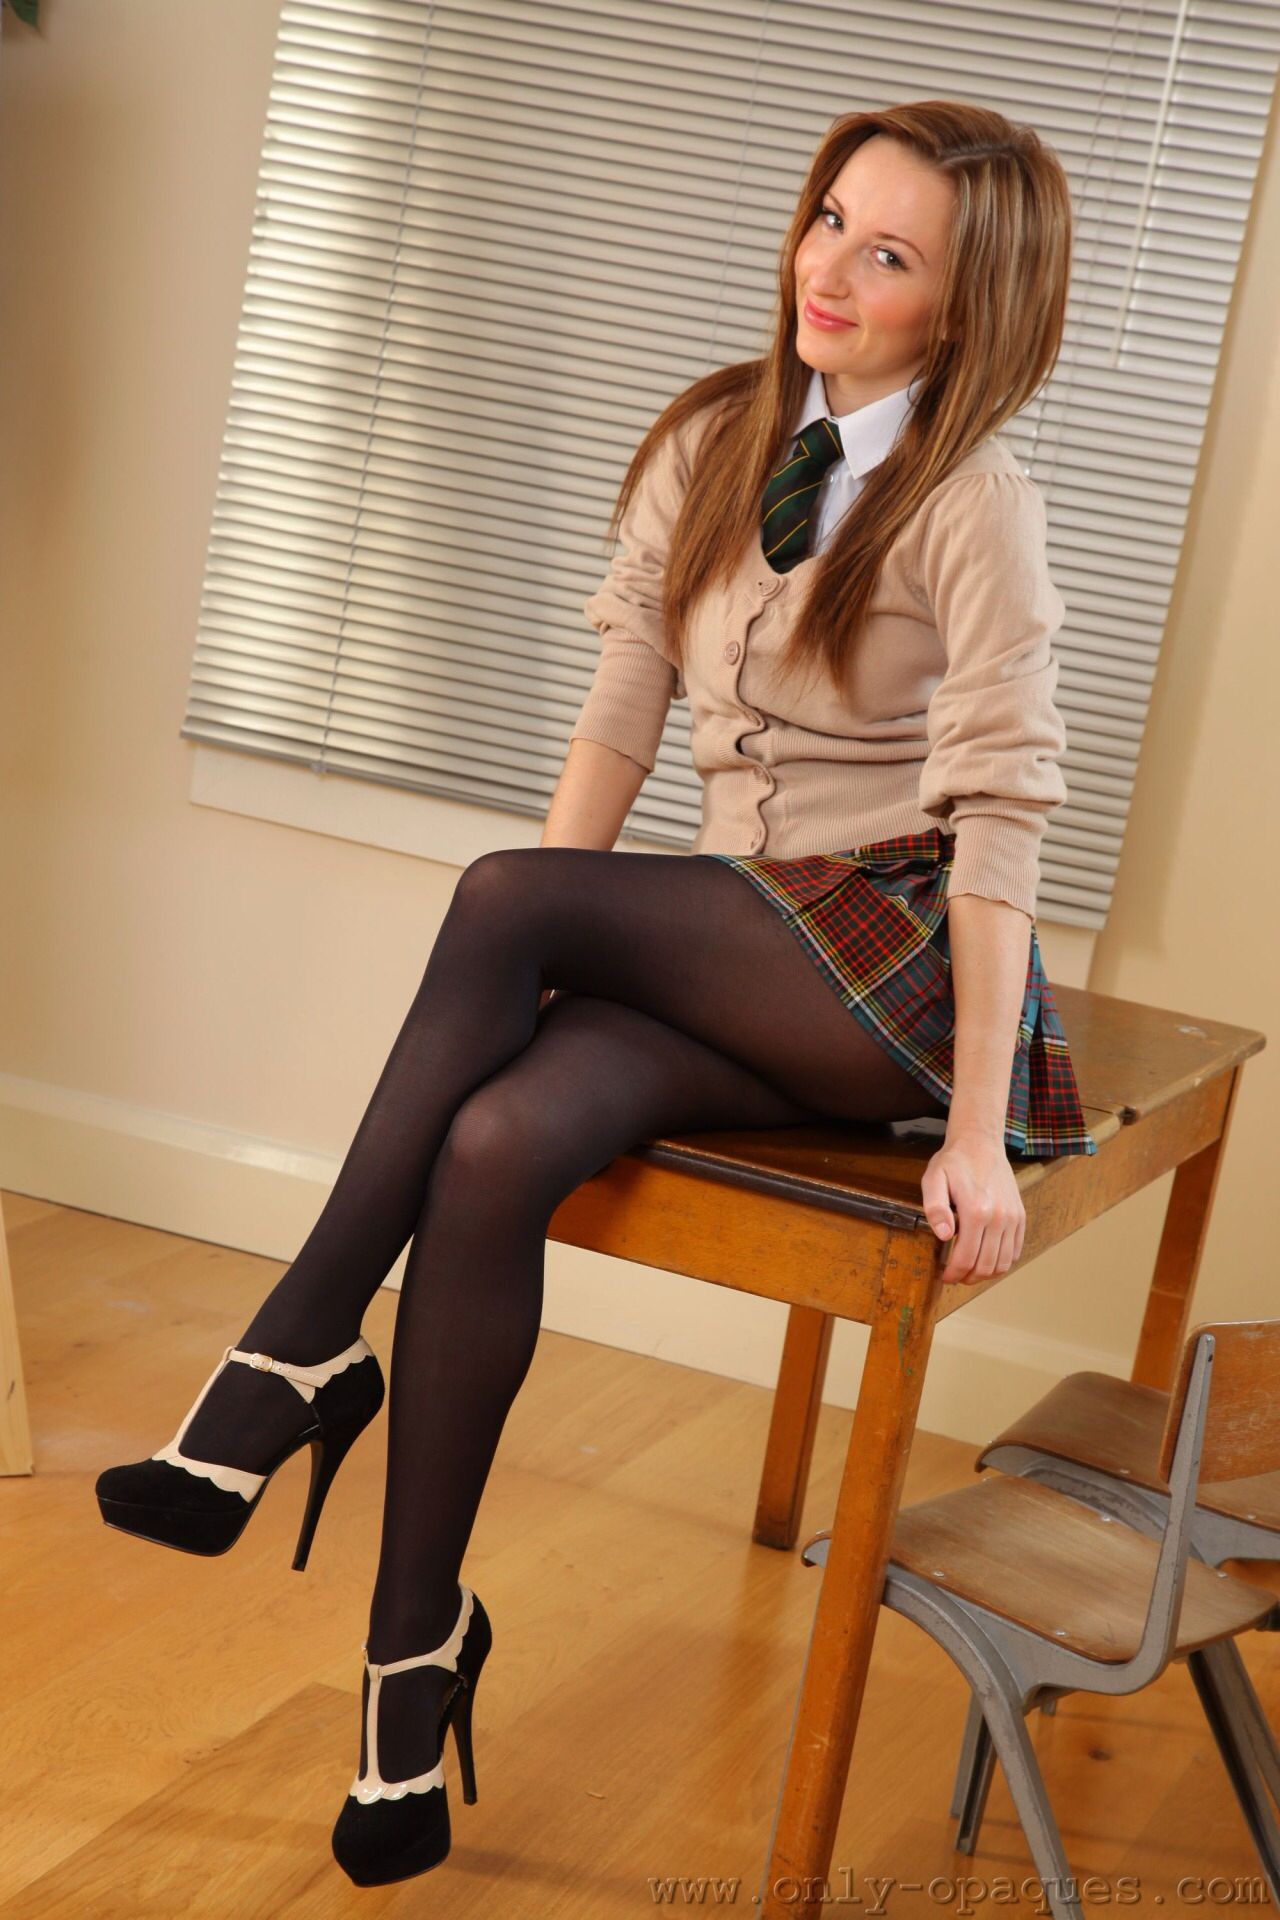 pantyhose-in-uniform-tamil-nude-girls-asses